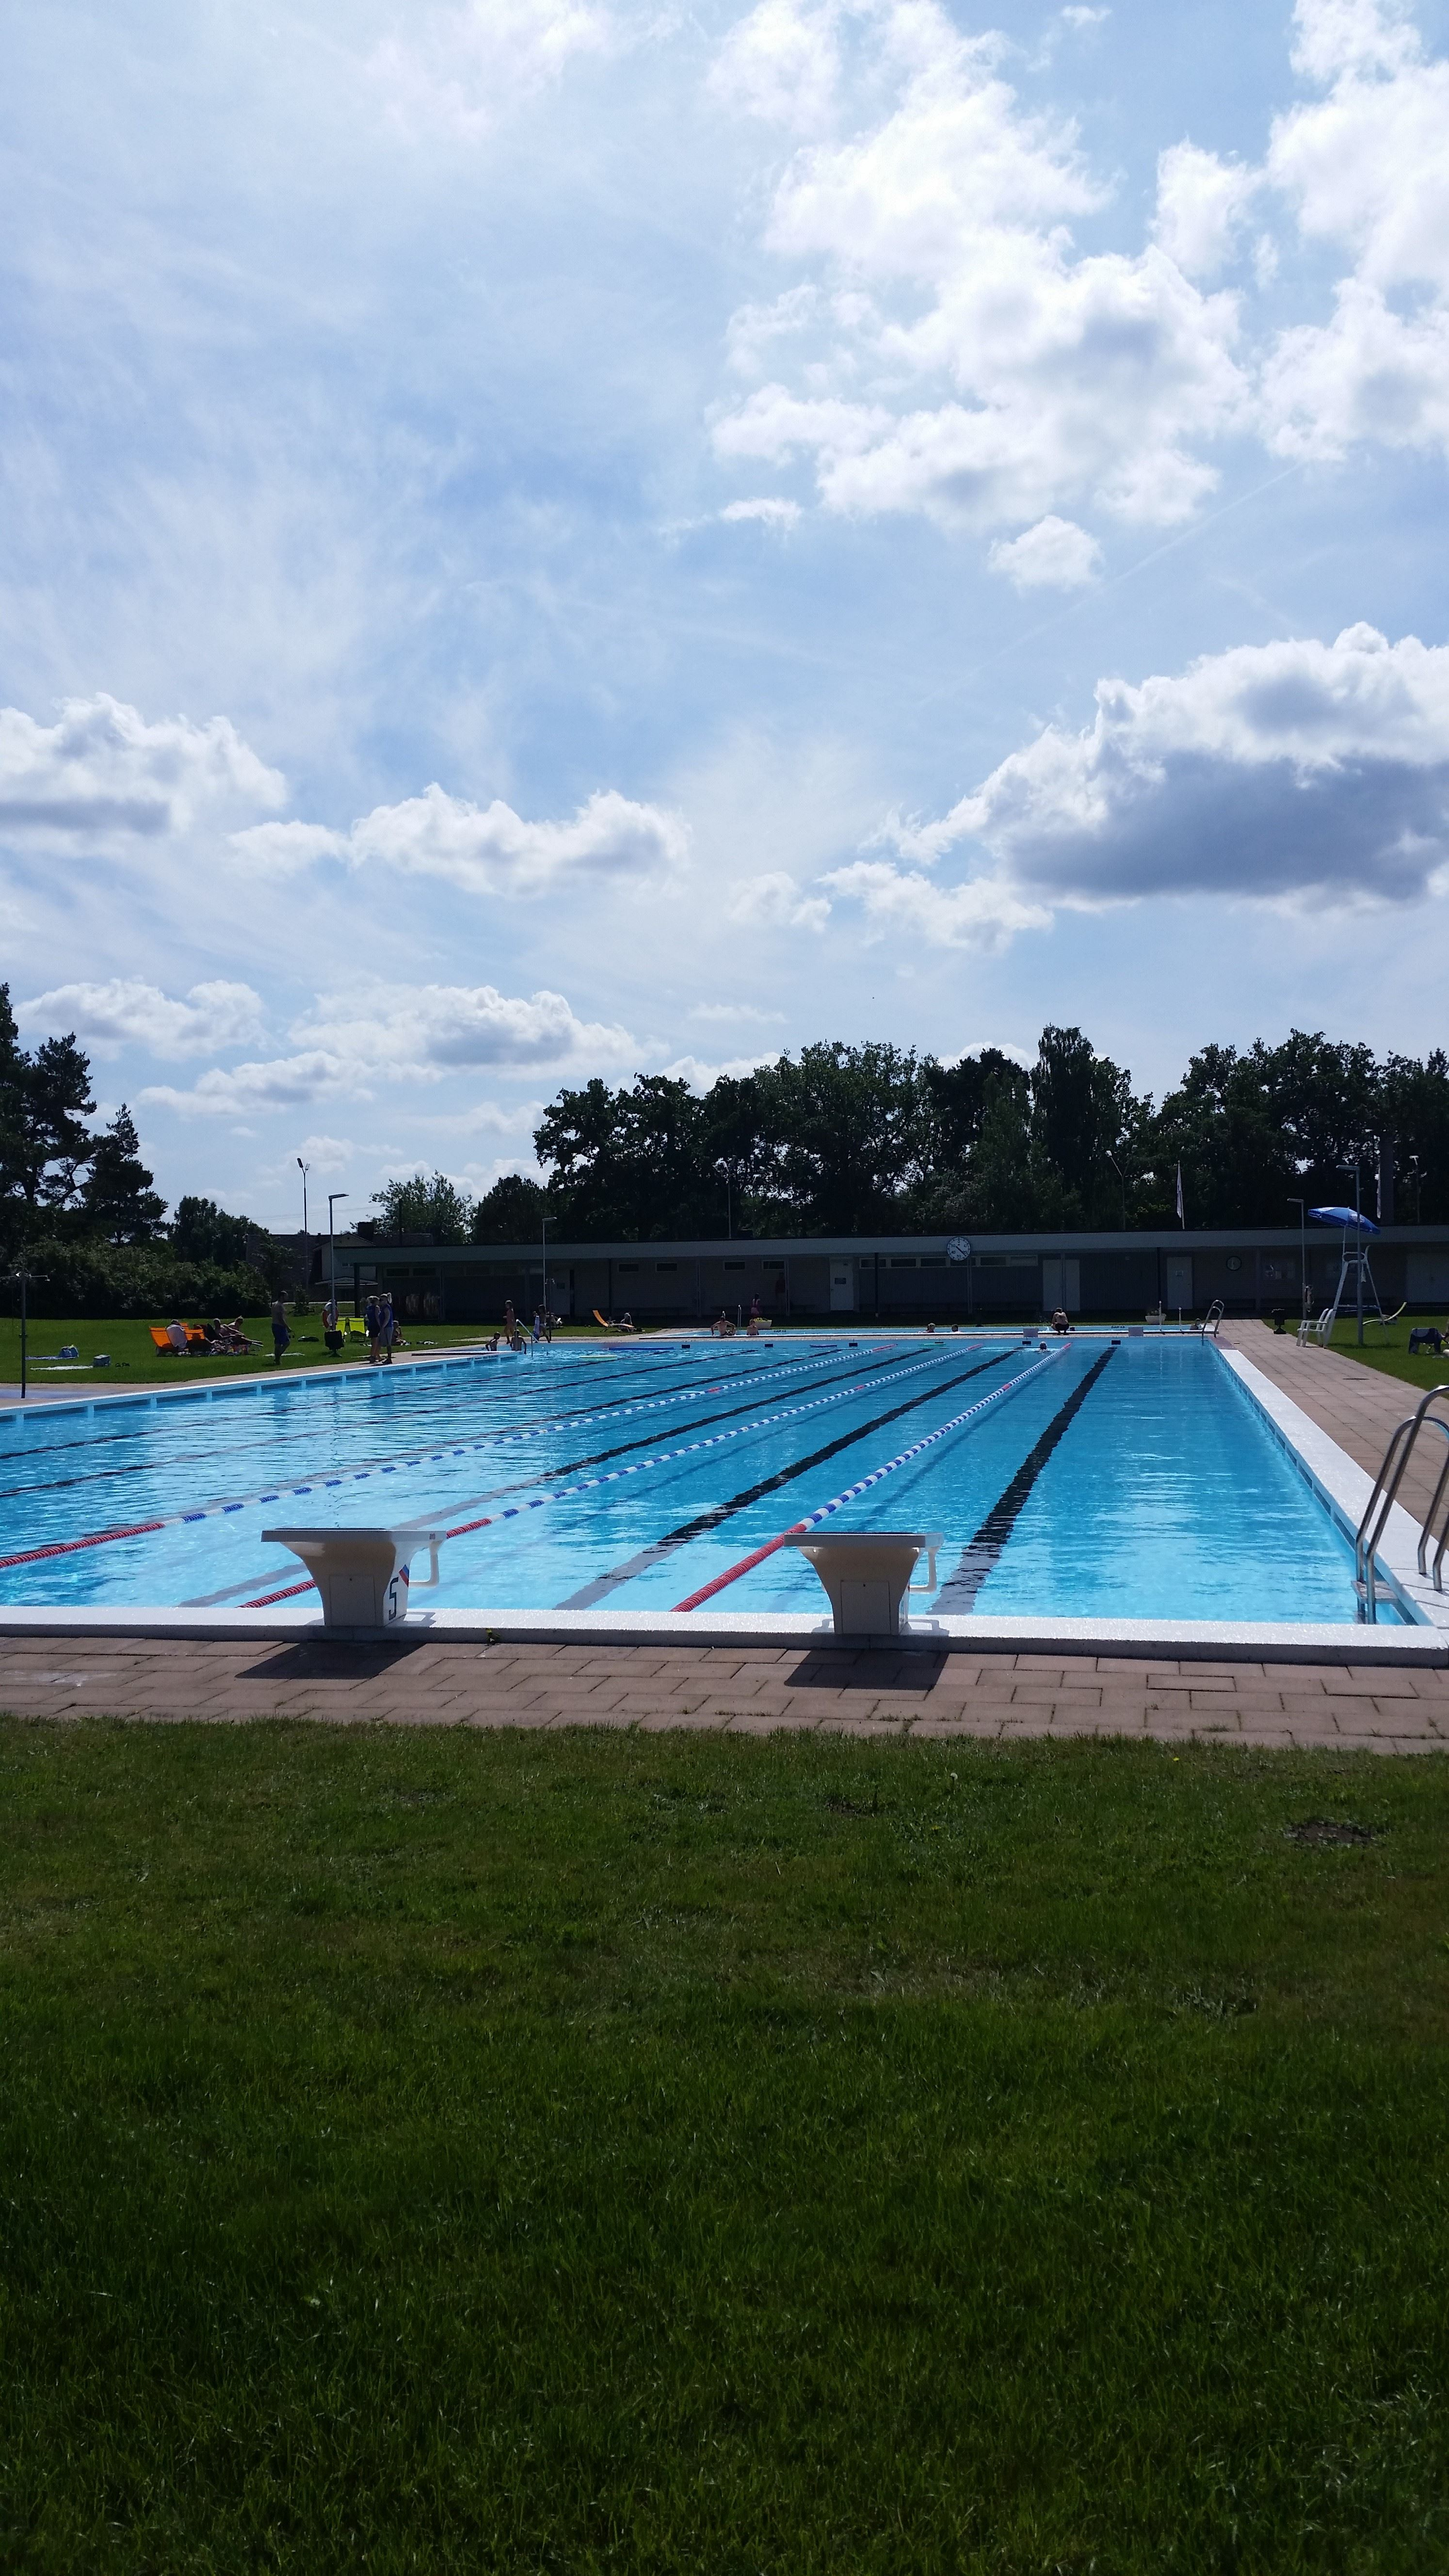 Ljungbyhed Outdoor Swimming Pool